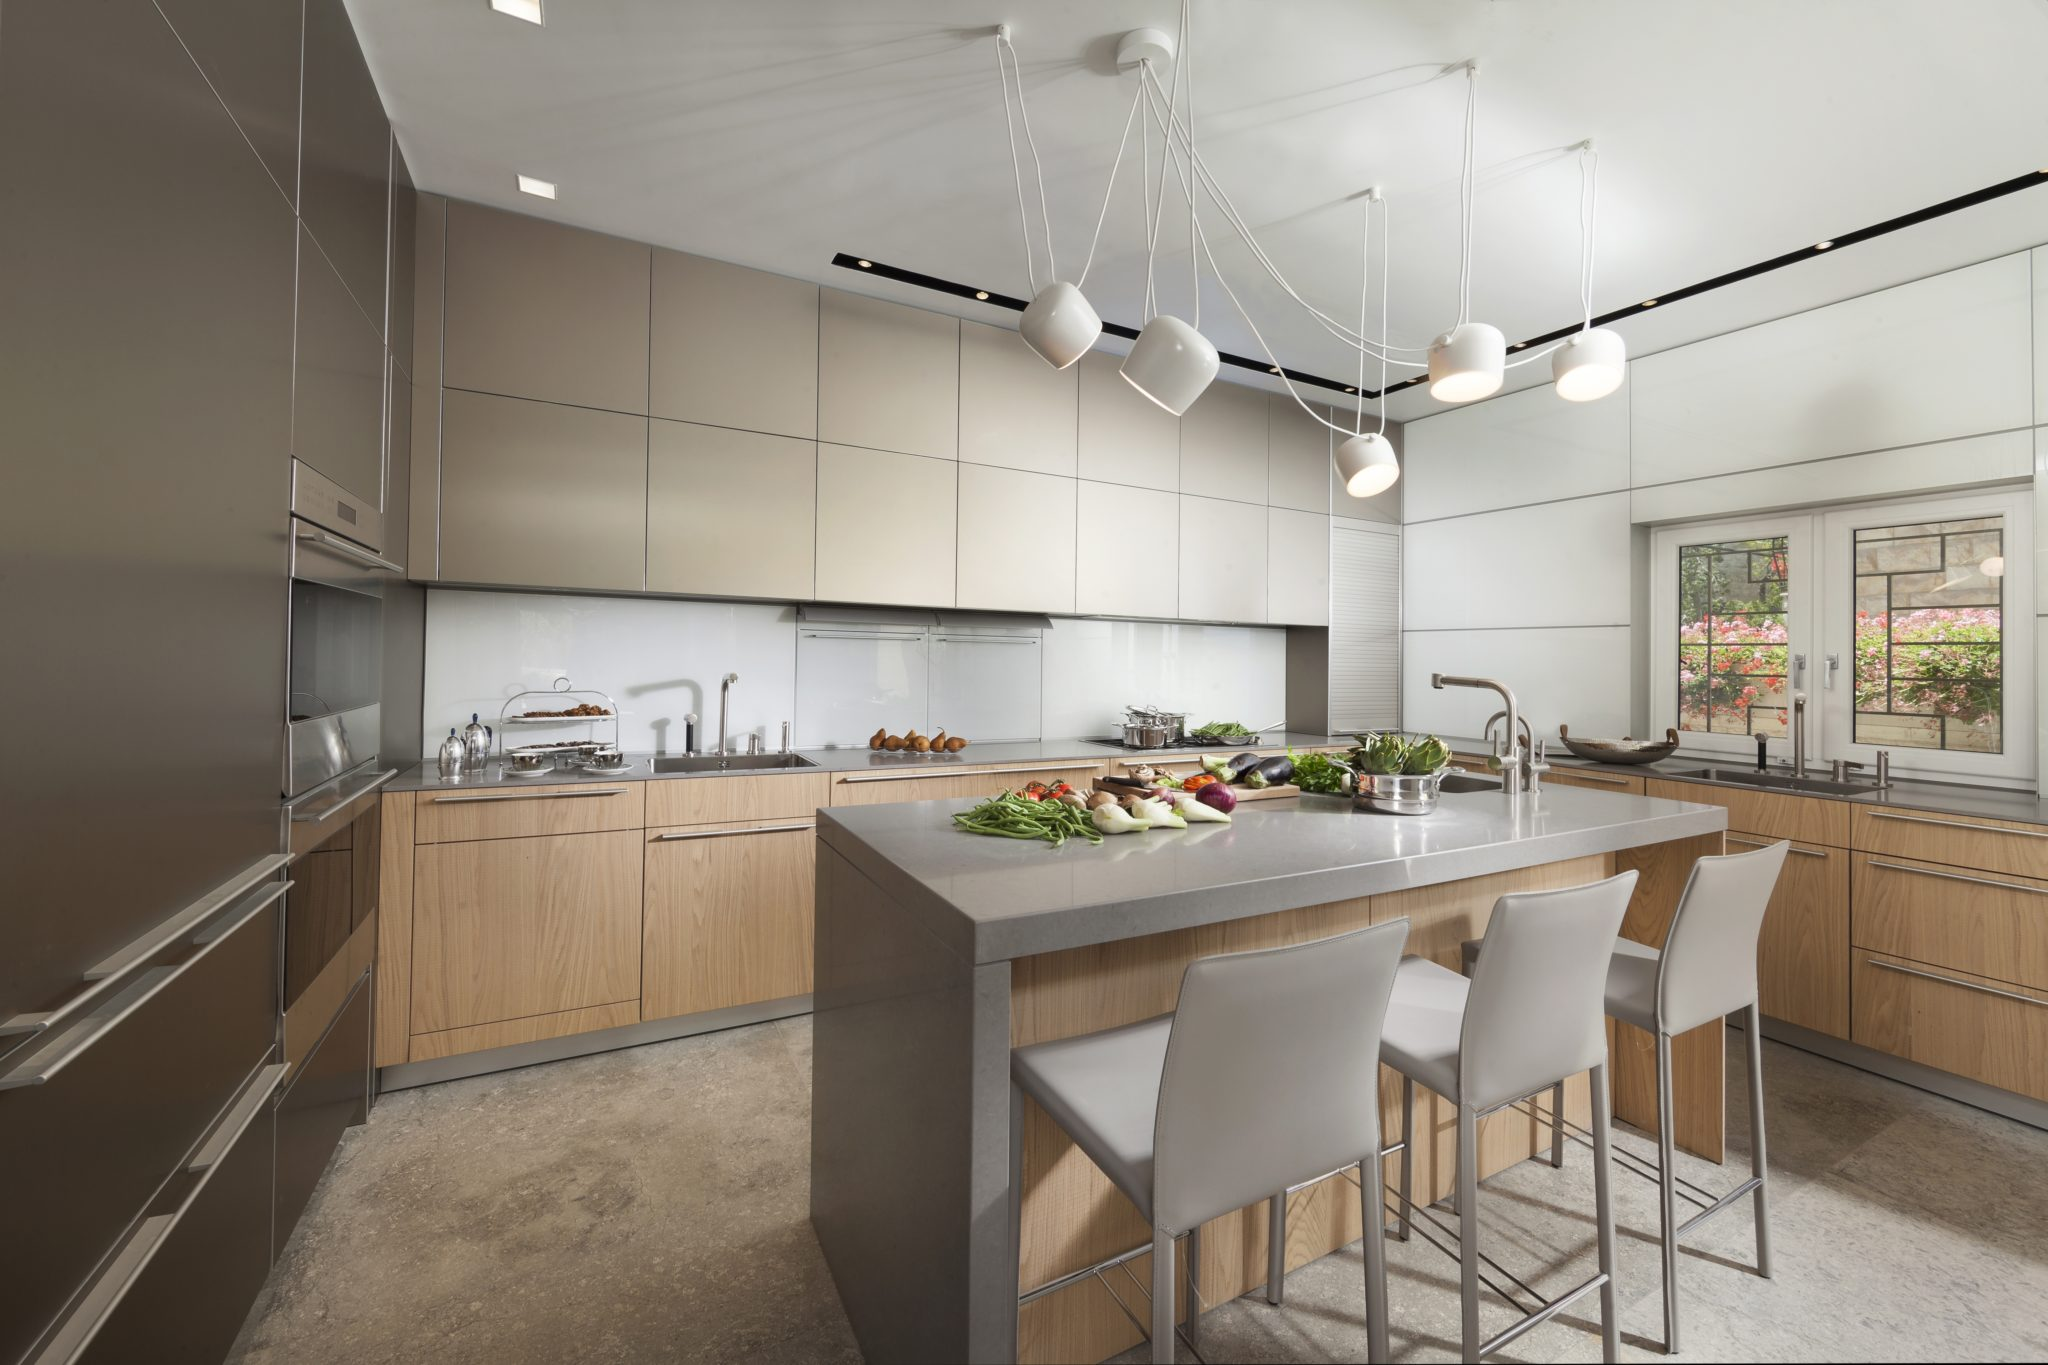 Modern kitchen with wood and grey cabinets, glass backsplash and island. By Annette Frommer Interior Design